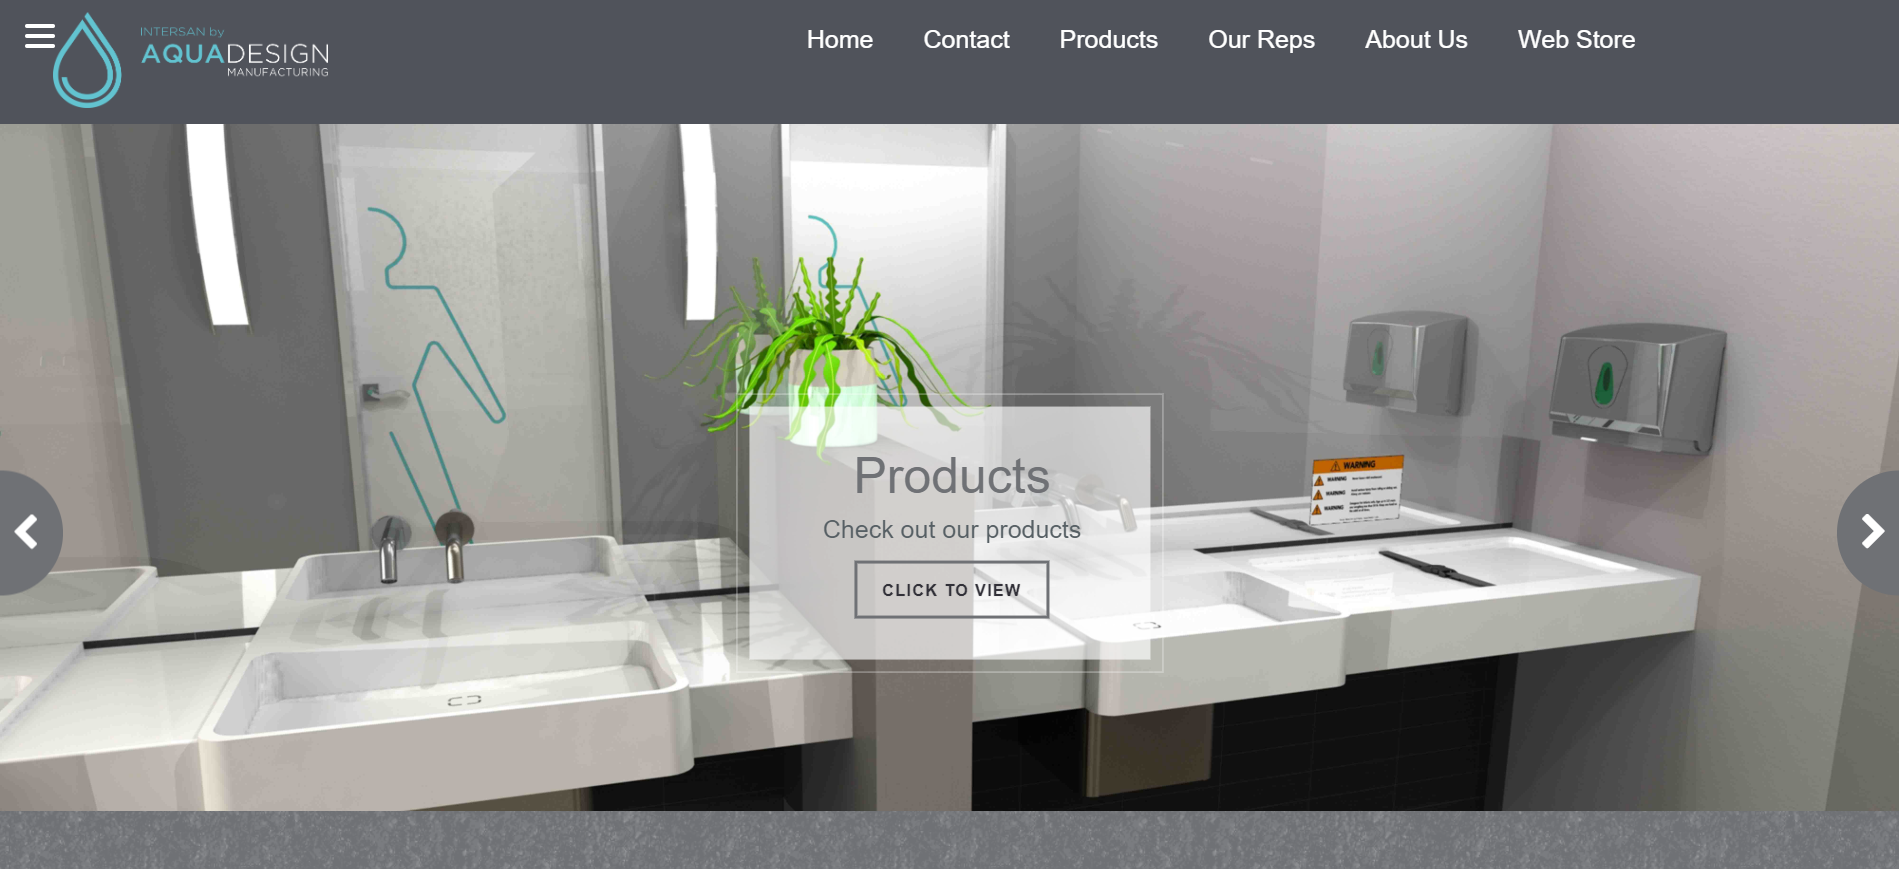 The intersan website for manufacturing sinks